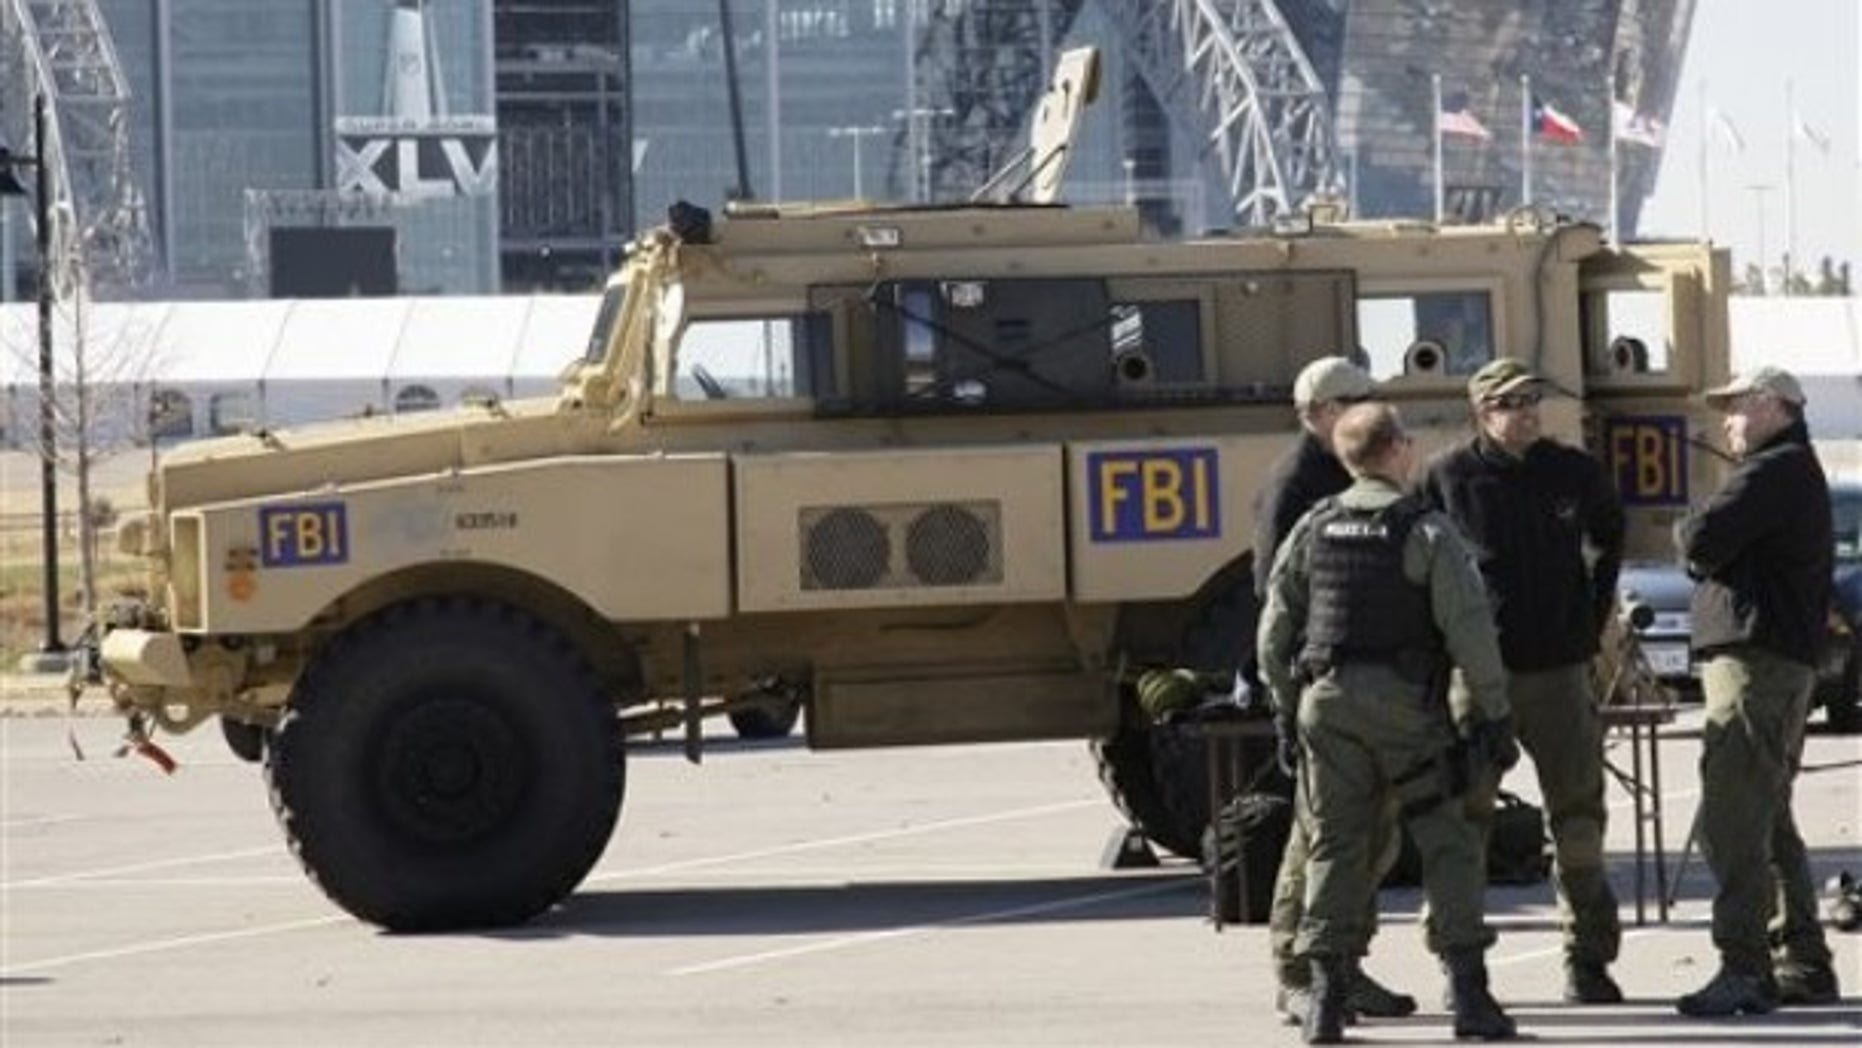 Cowboys Stadium is seen at rear as members of the FBI stand by one of their assault vehicles during a media day event where public safety agencies, local, state and federal, showed some of the equipment and tools being used to protect the public for the upcoming Super Bowl XLV NFL football game, Friday, Jan. 21, 2011, in Arlington, Texas. (AP)